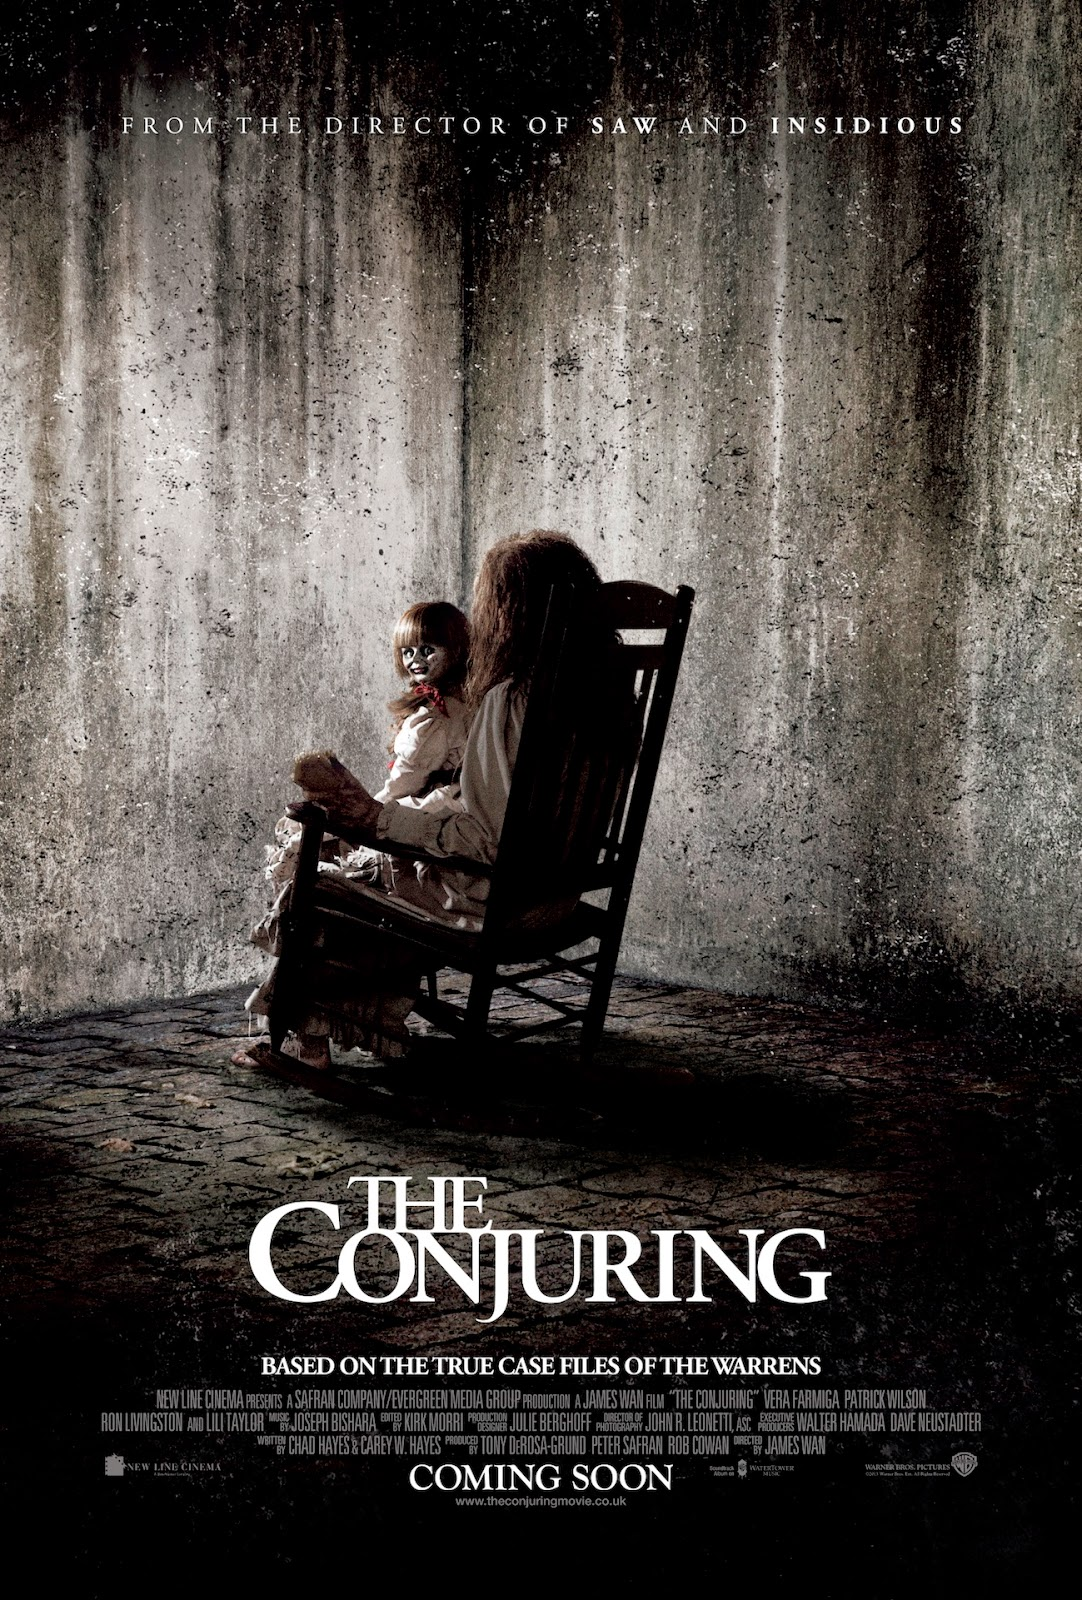 The Conjouring